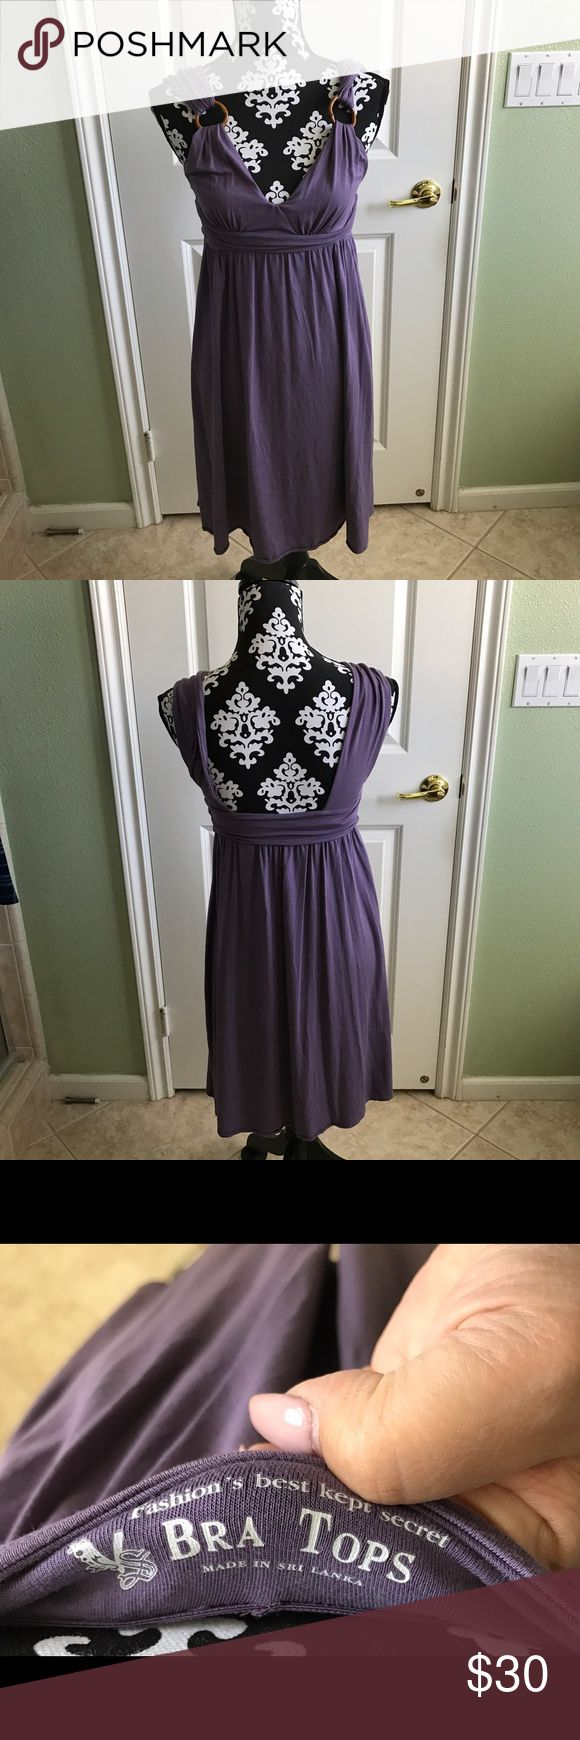 Victoria Secret Purple Summer dress In great pre loved condition no rips stains or tears  has a built in bra support Victoria's Secret Dresses Midi